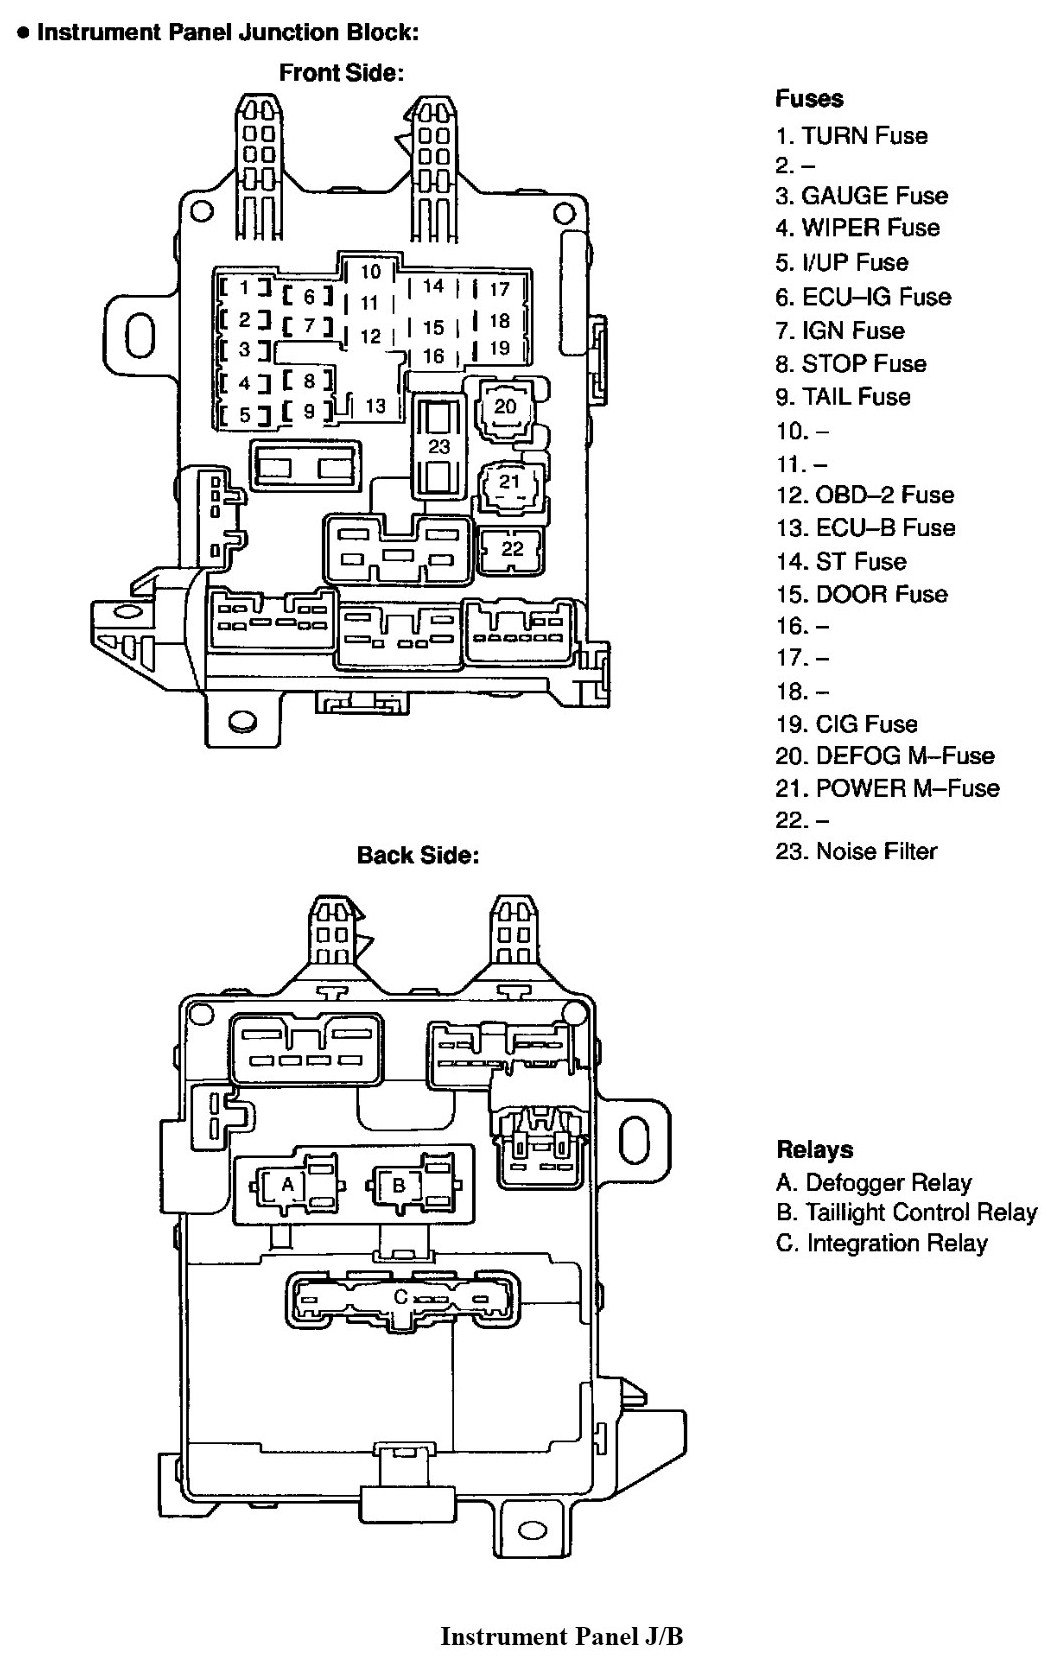 2008 toyota corolla fuse box wiring database diagram 2005 Toyota Corolla Fuse Box Location